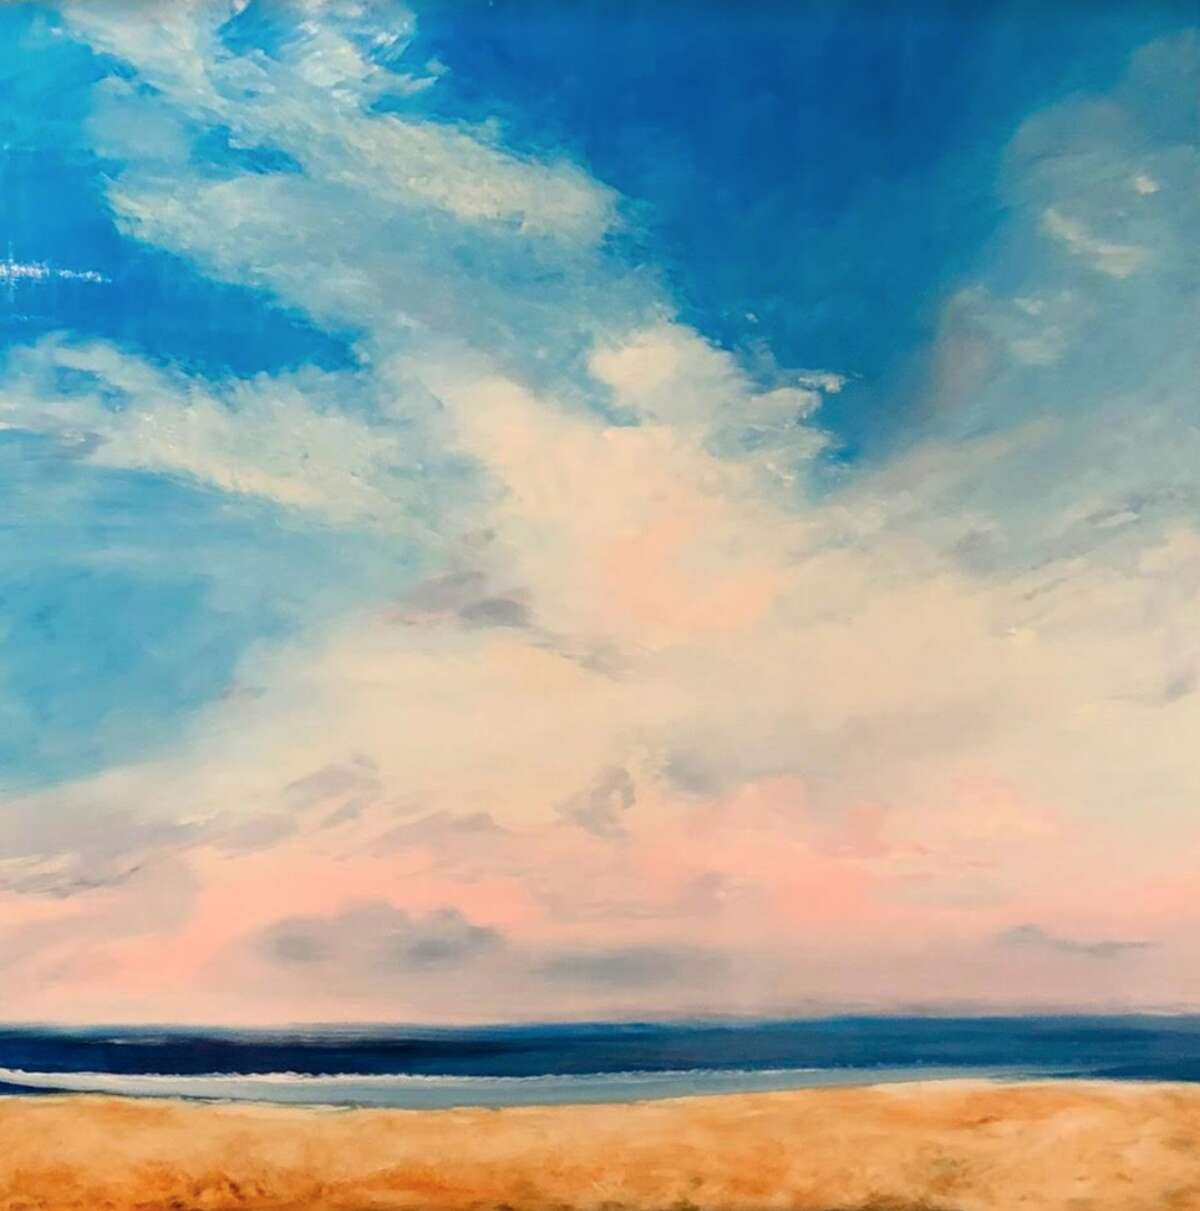 Artwork by Vicki French Smith will be on display at the Darien Nature Center